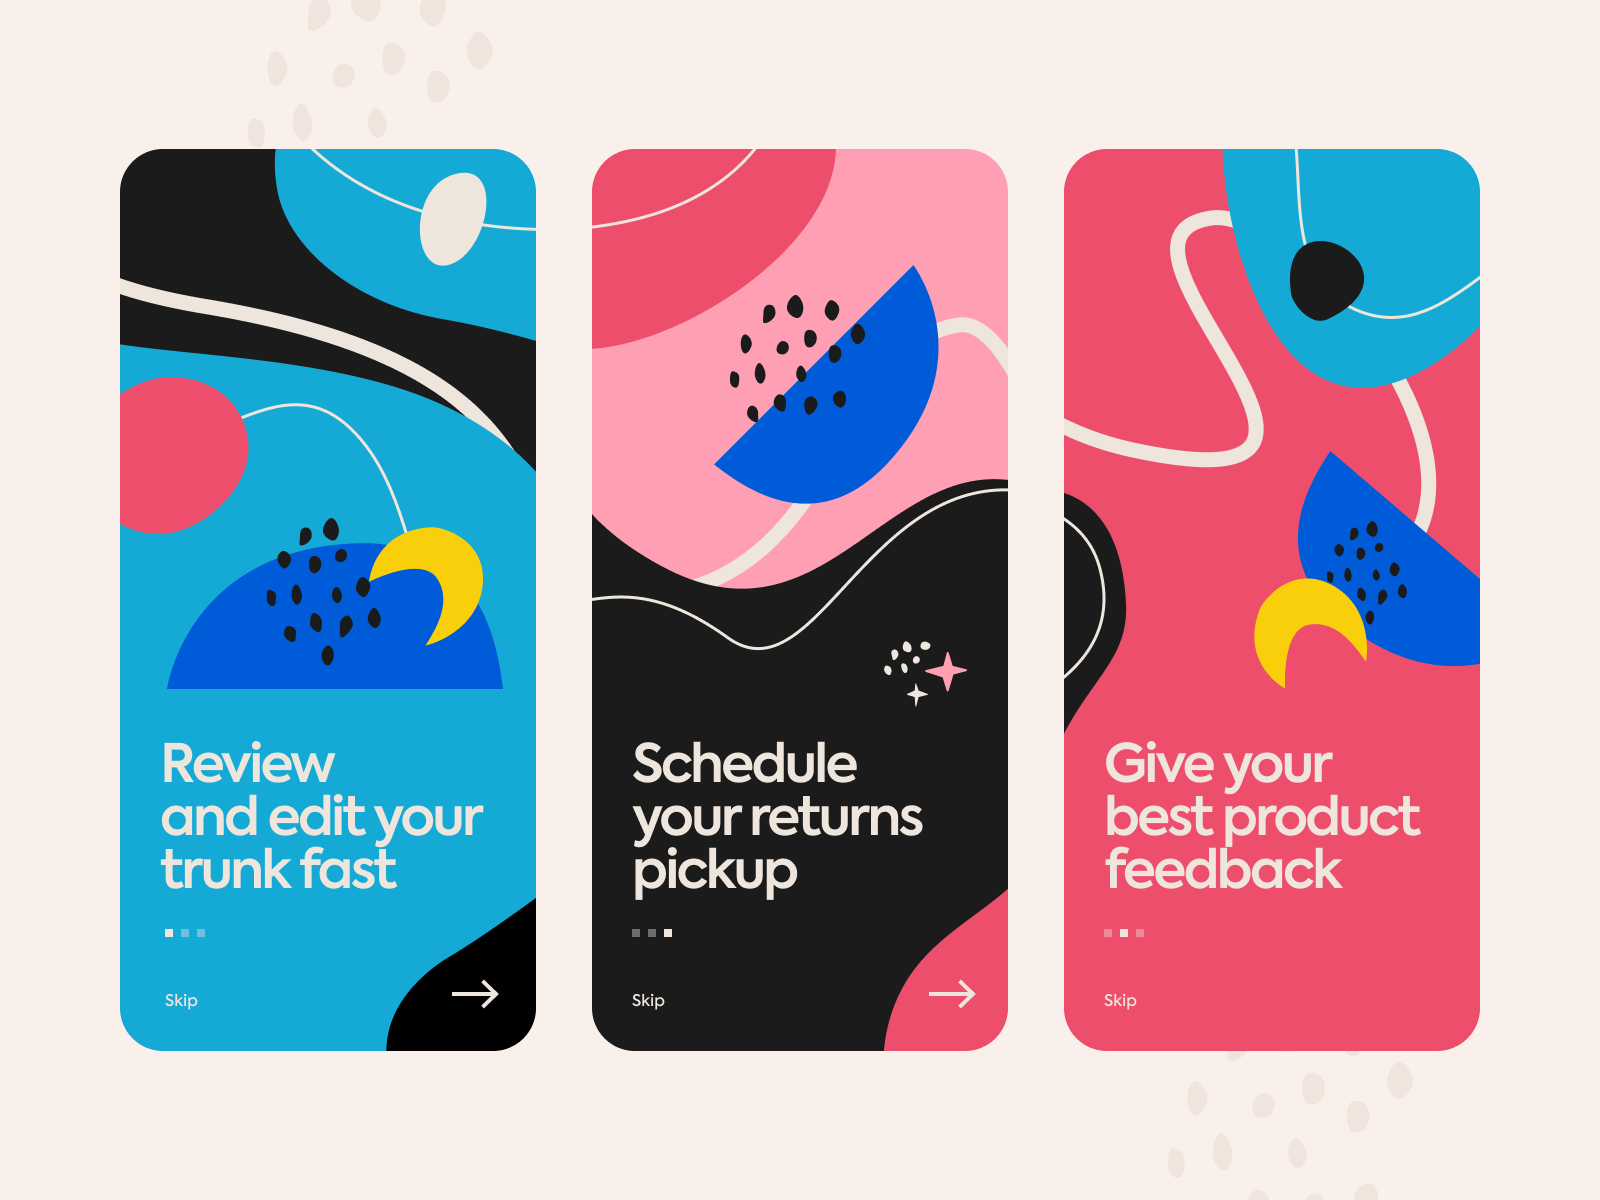 Onboarding screens exploration with abstract forms by Ania Chebysheva